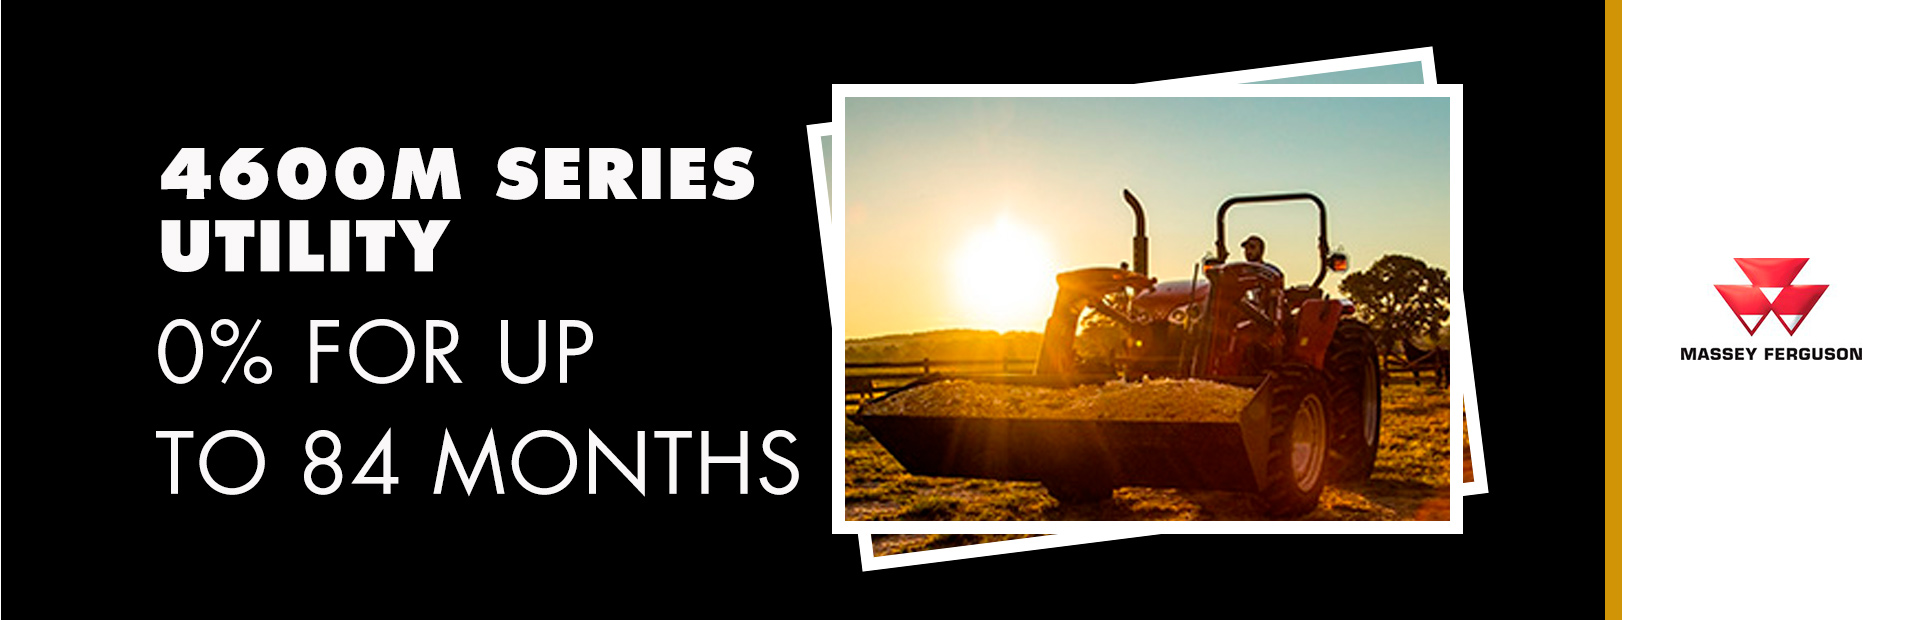 Massey Ferguson: 4600M Series Utility - 0% for up to 84 Months